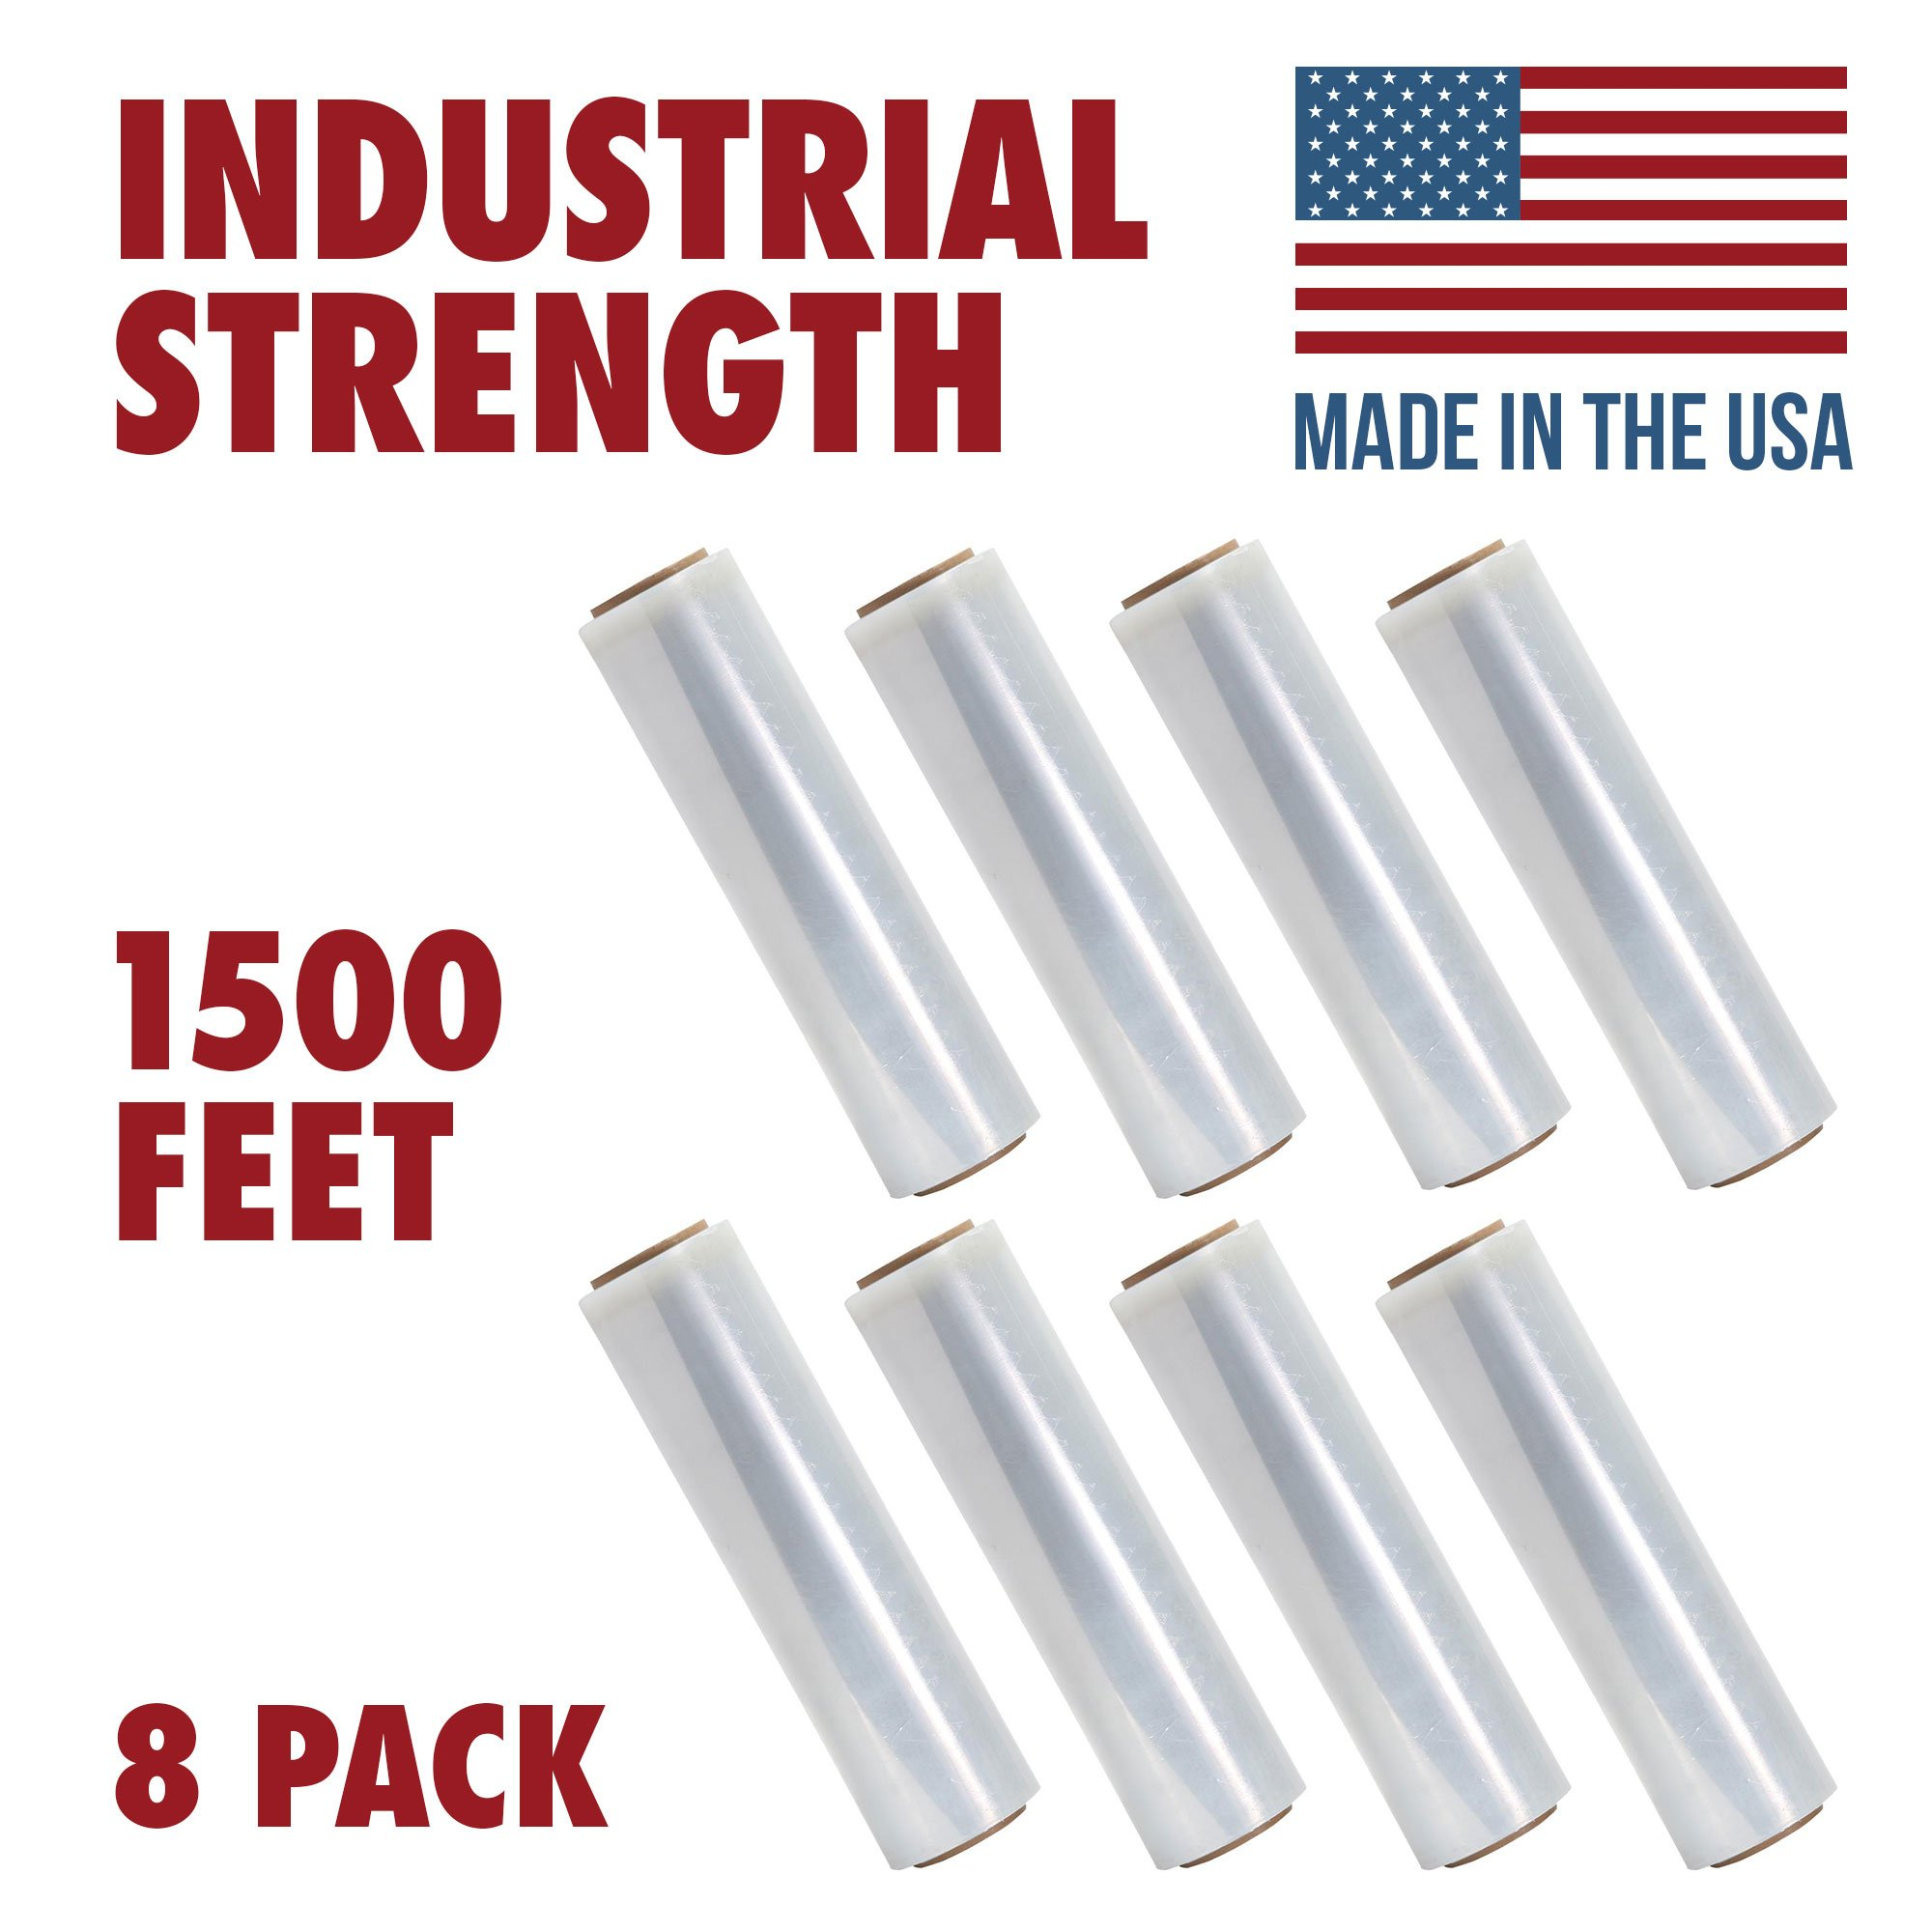 18 X 1500 Tough Pallet Shrink Wrap, 80 Gauge 18 Inch X 1500 feet Industrial Strength, Commercial Grade Strength Film, Moving & Packing Wrap, For Furniture, Boxes, Pallets (8-Pack)